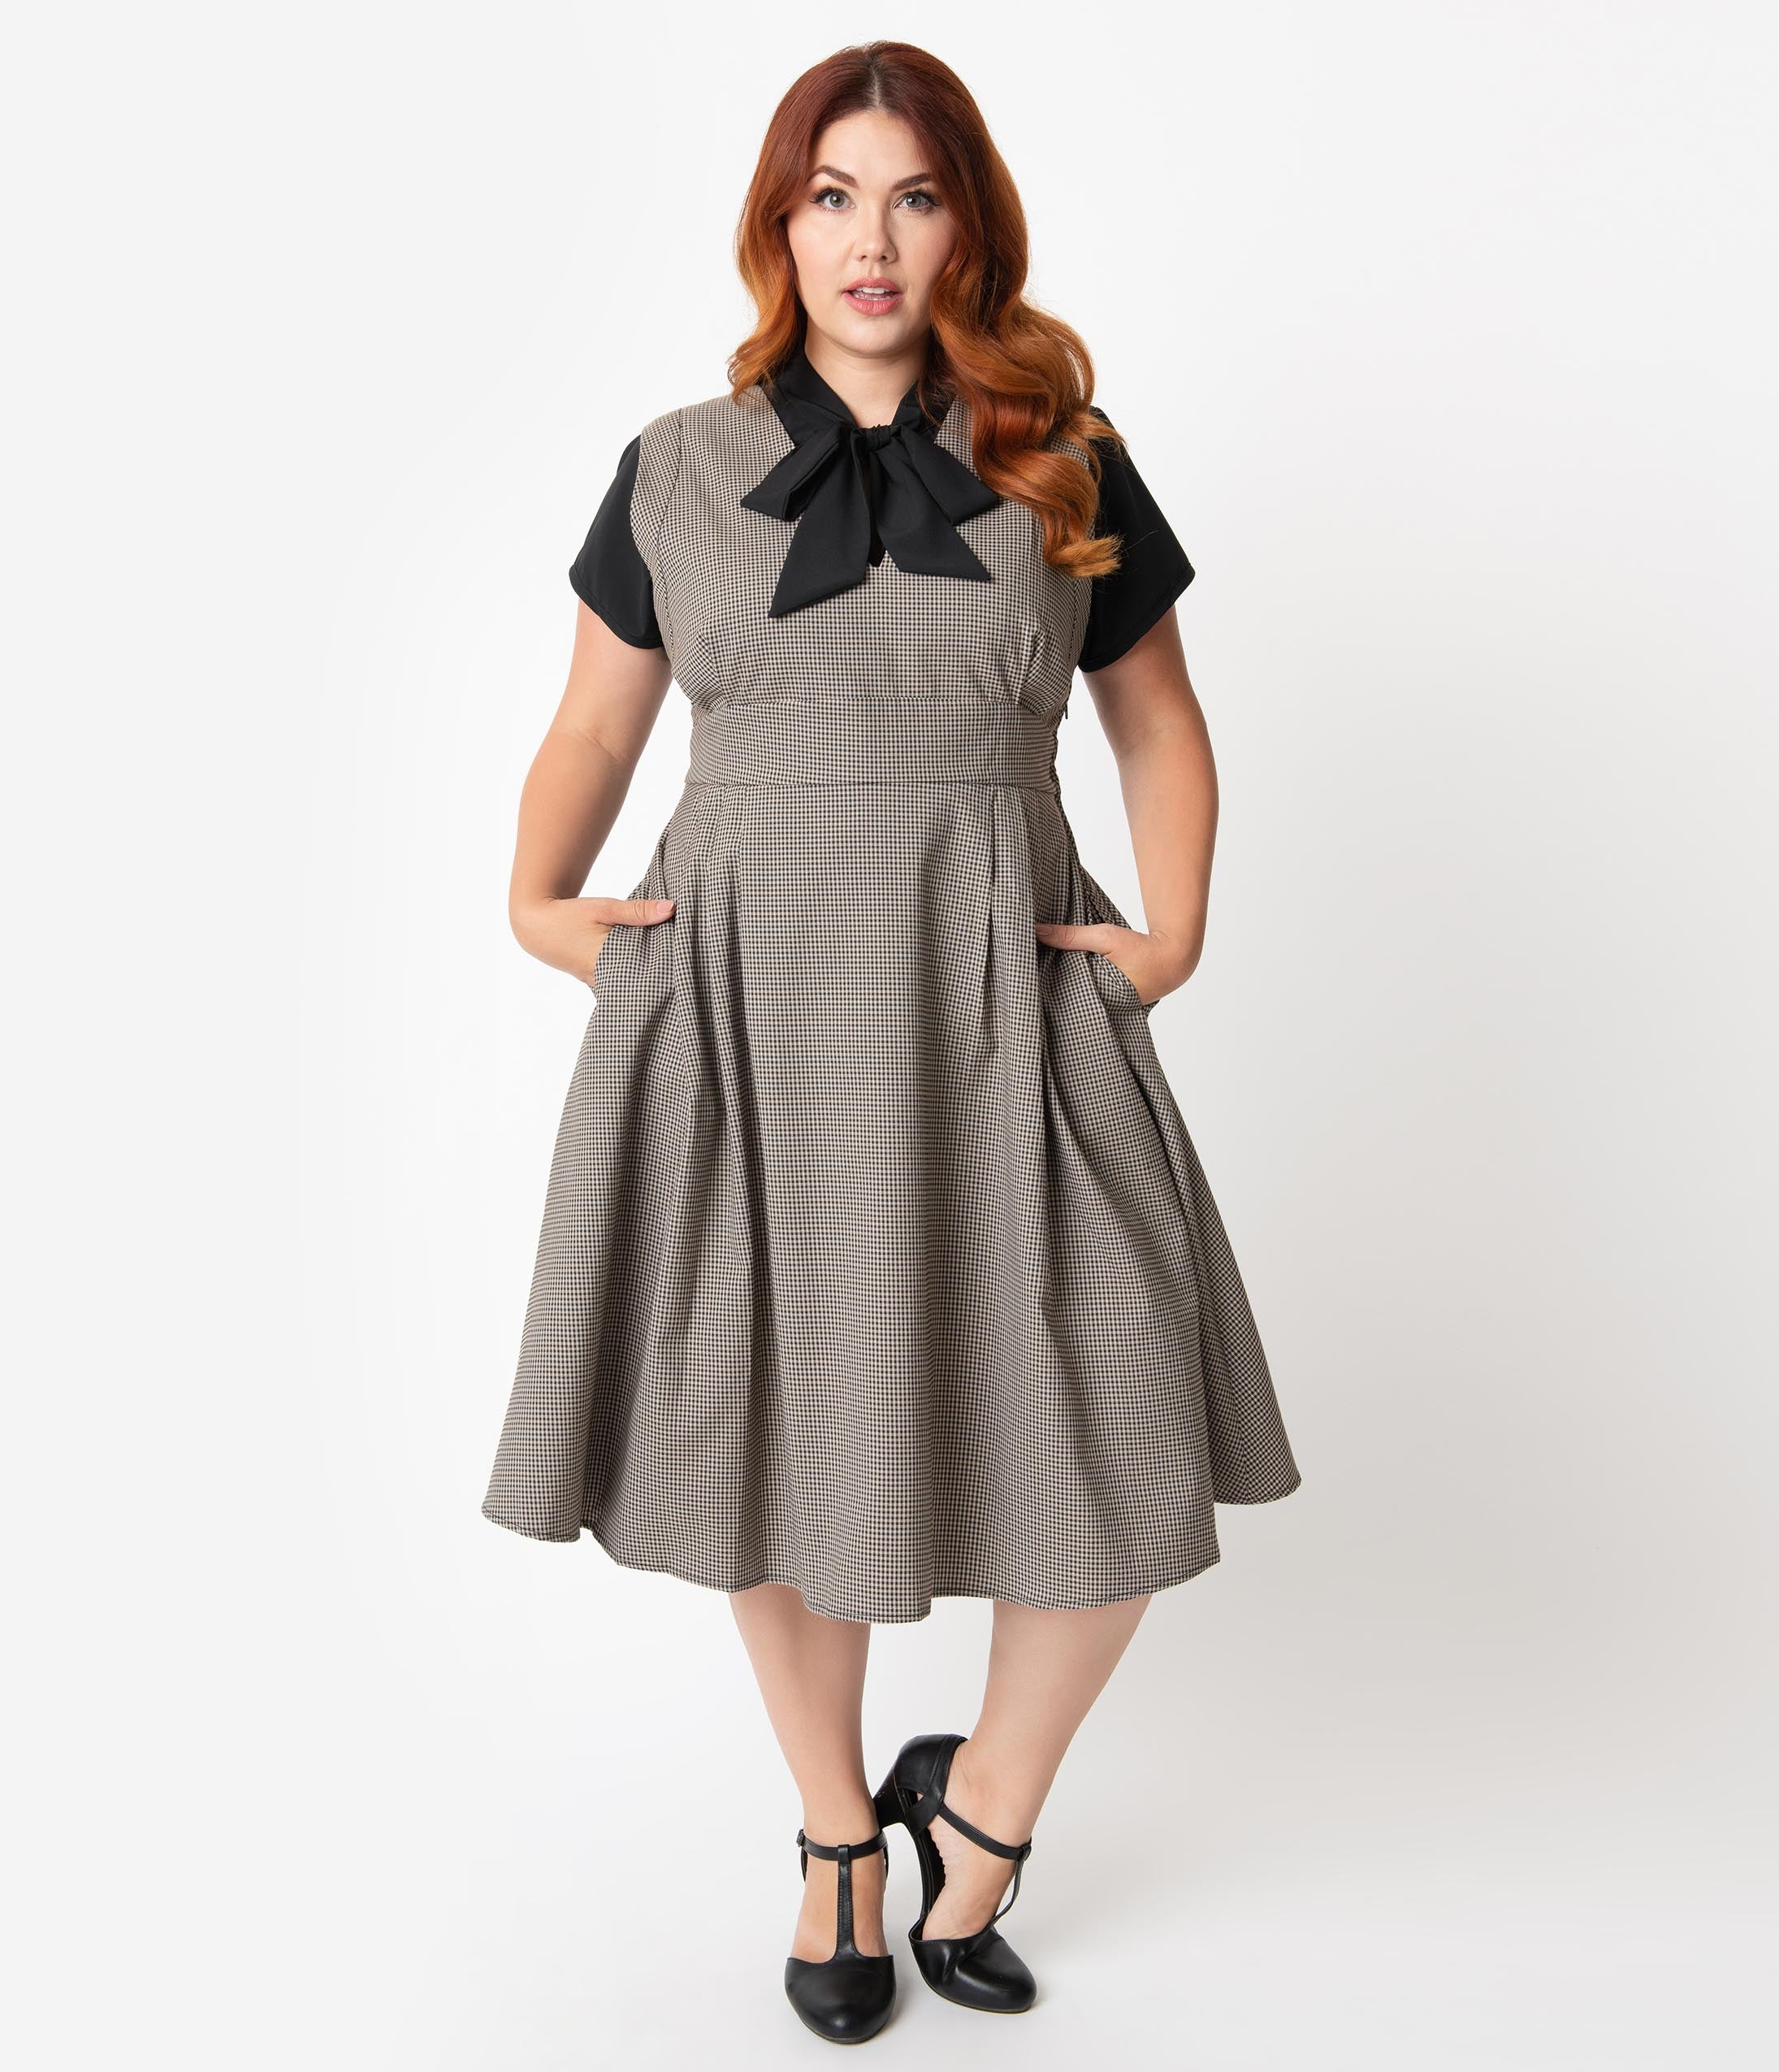 60s 70s Plus Size Dresses, Clothing, Costumes Plus Size Retro Style Brown Gingham Lola Pinafore Swing Dress $88.00 AT vintagedancer.com